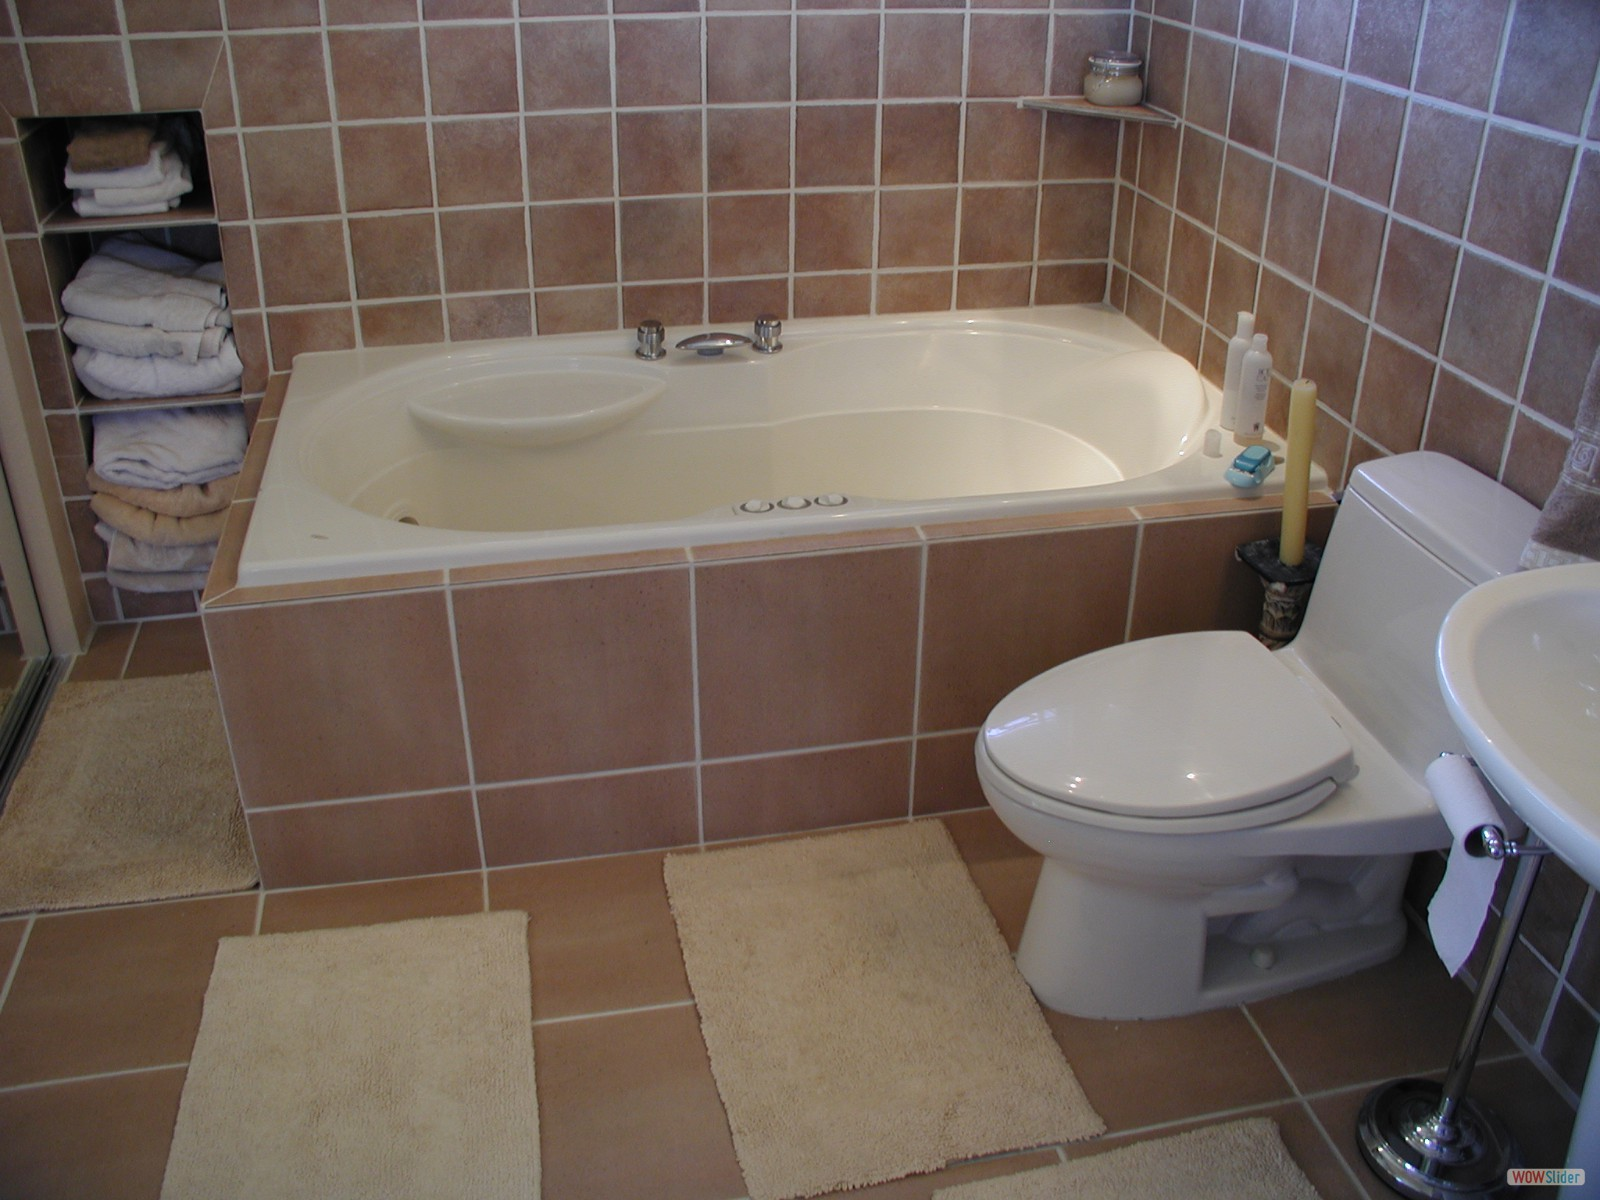 BATHROOM REMODEL - Tub & Tile